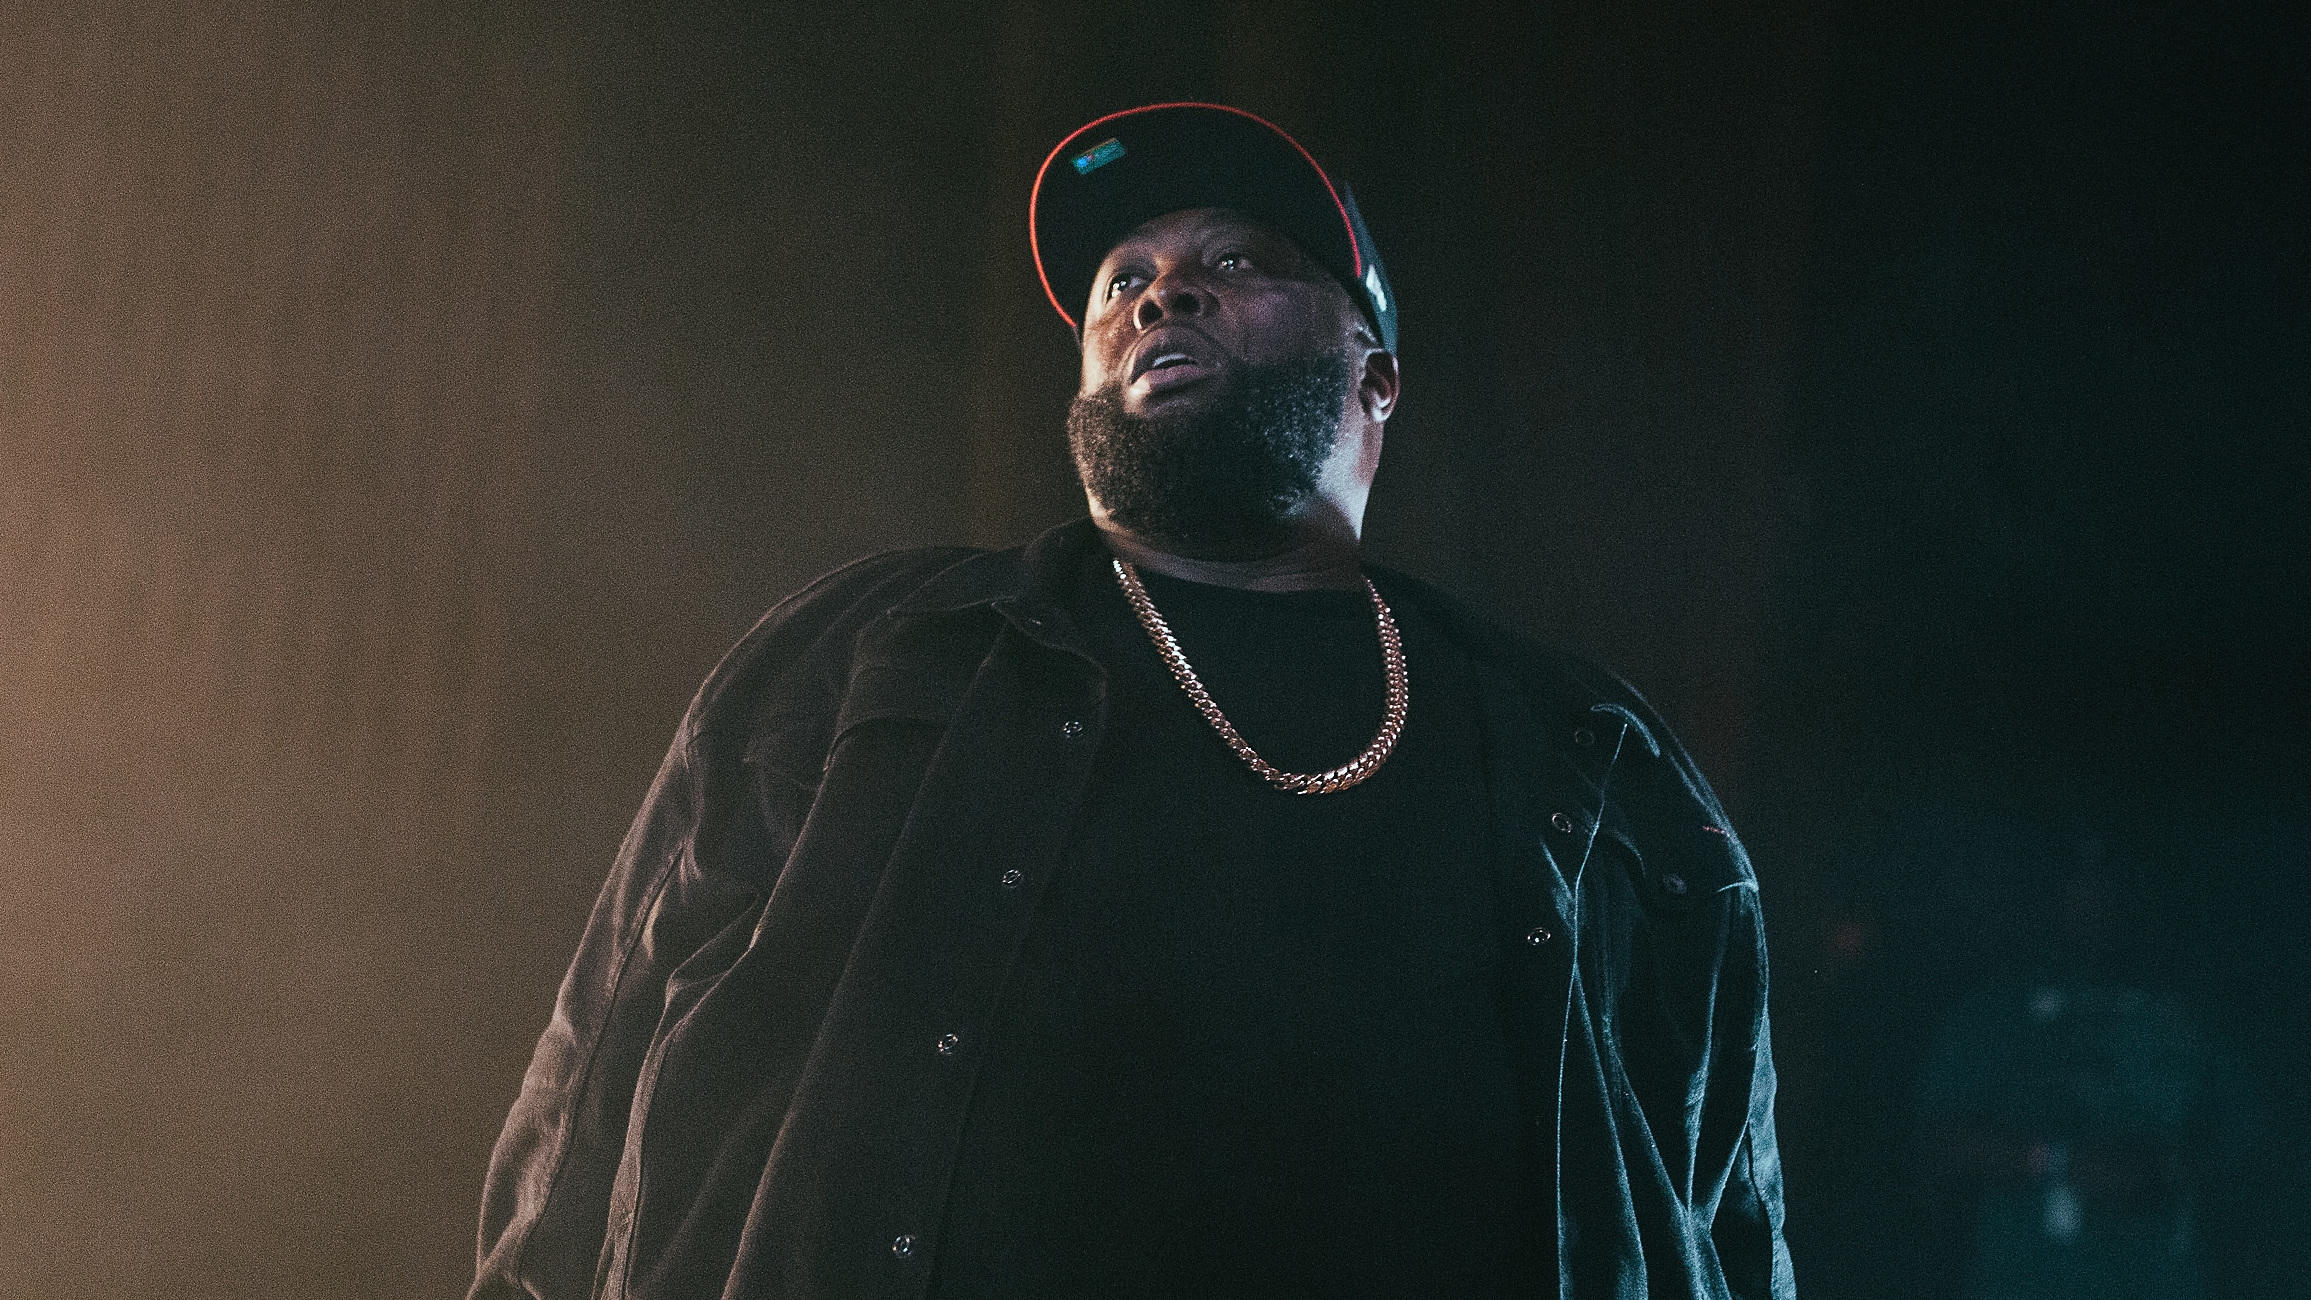 Killer Mike of Run The Jewels. After appearing in an interview with NRATV the rapper claims his appearance was misused by the gun advocacy organization